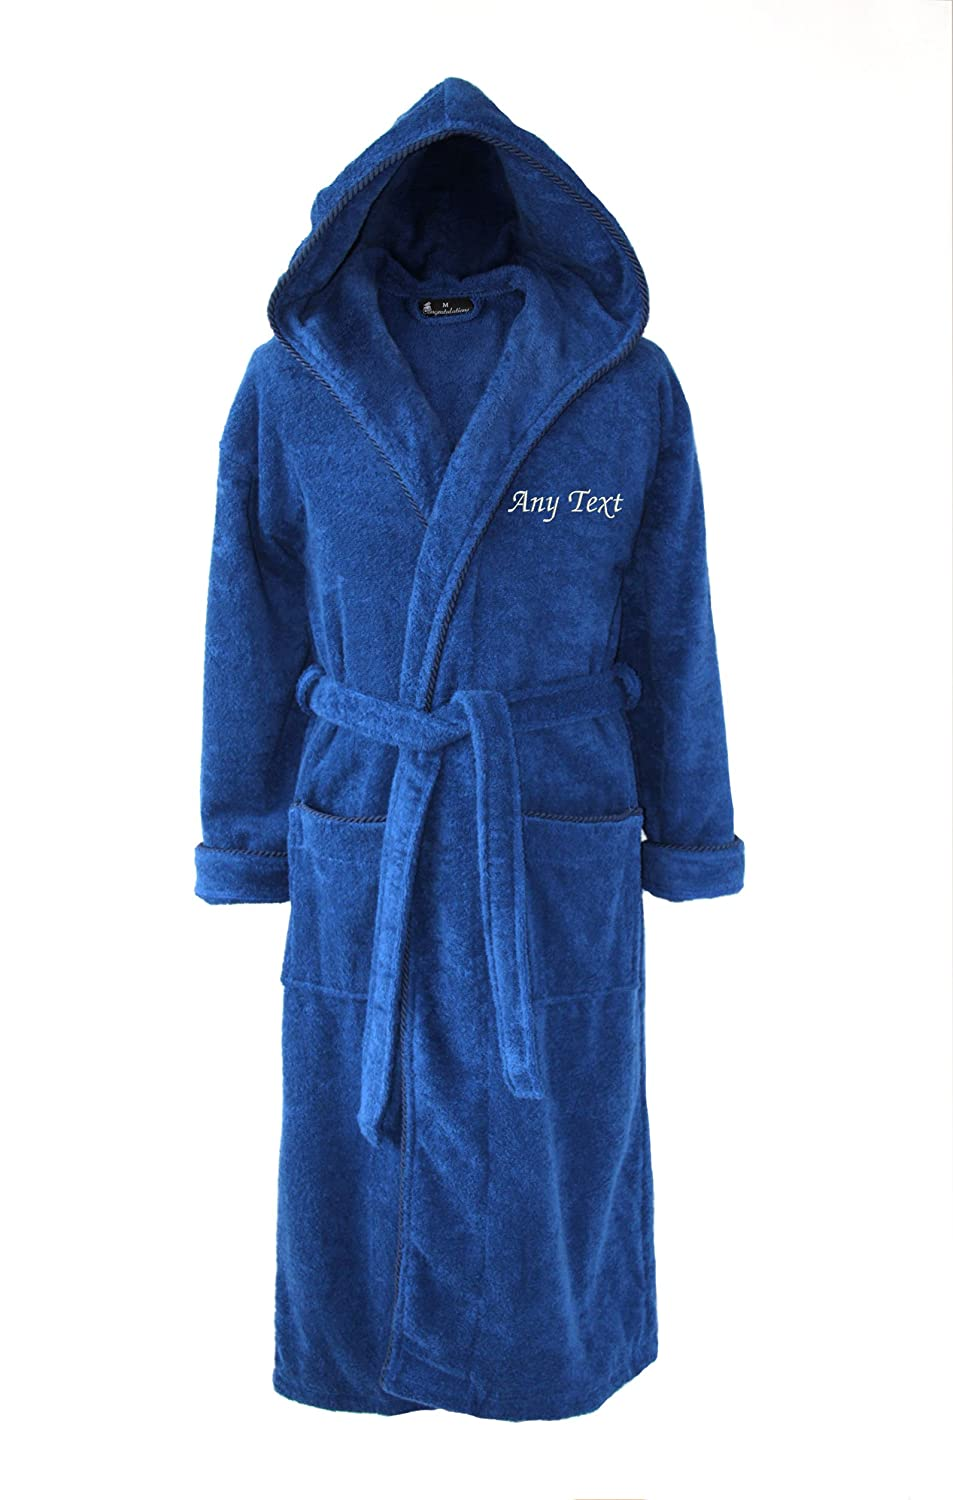 Personalised Hooded Towelling Bathrobe - Dark Blue with Spiral Cord